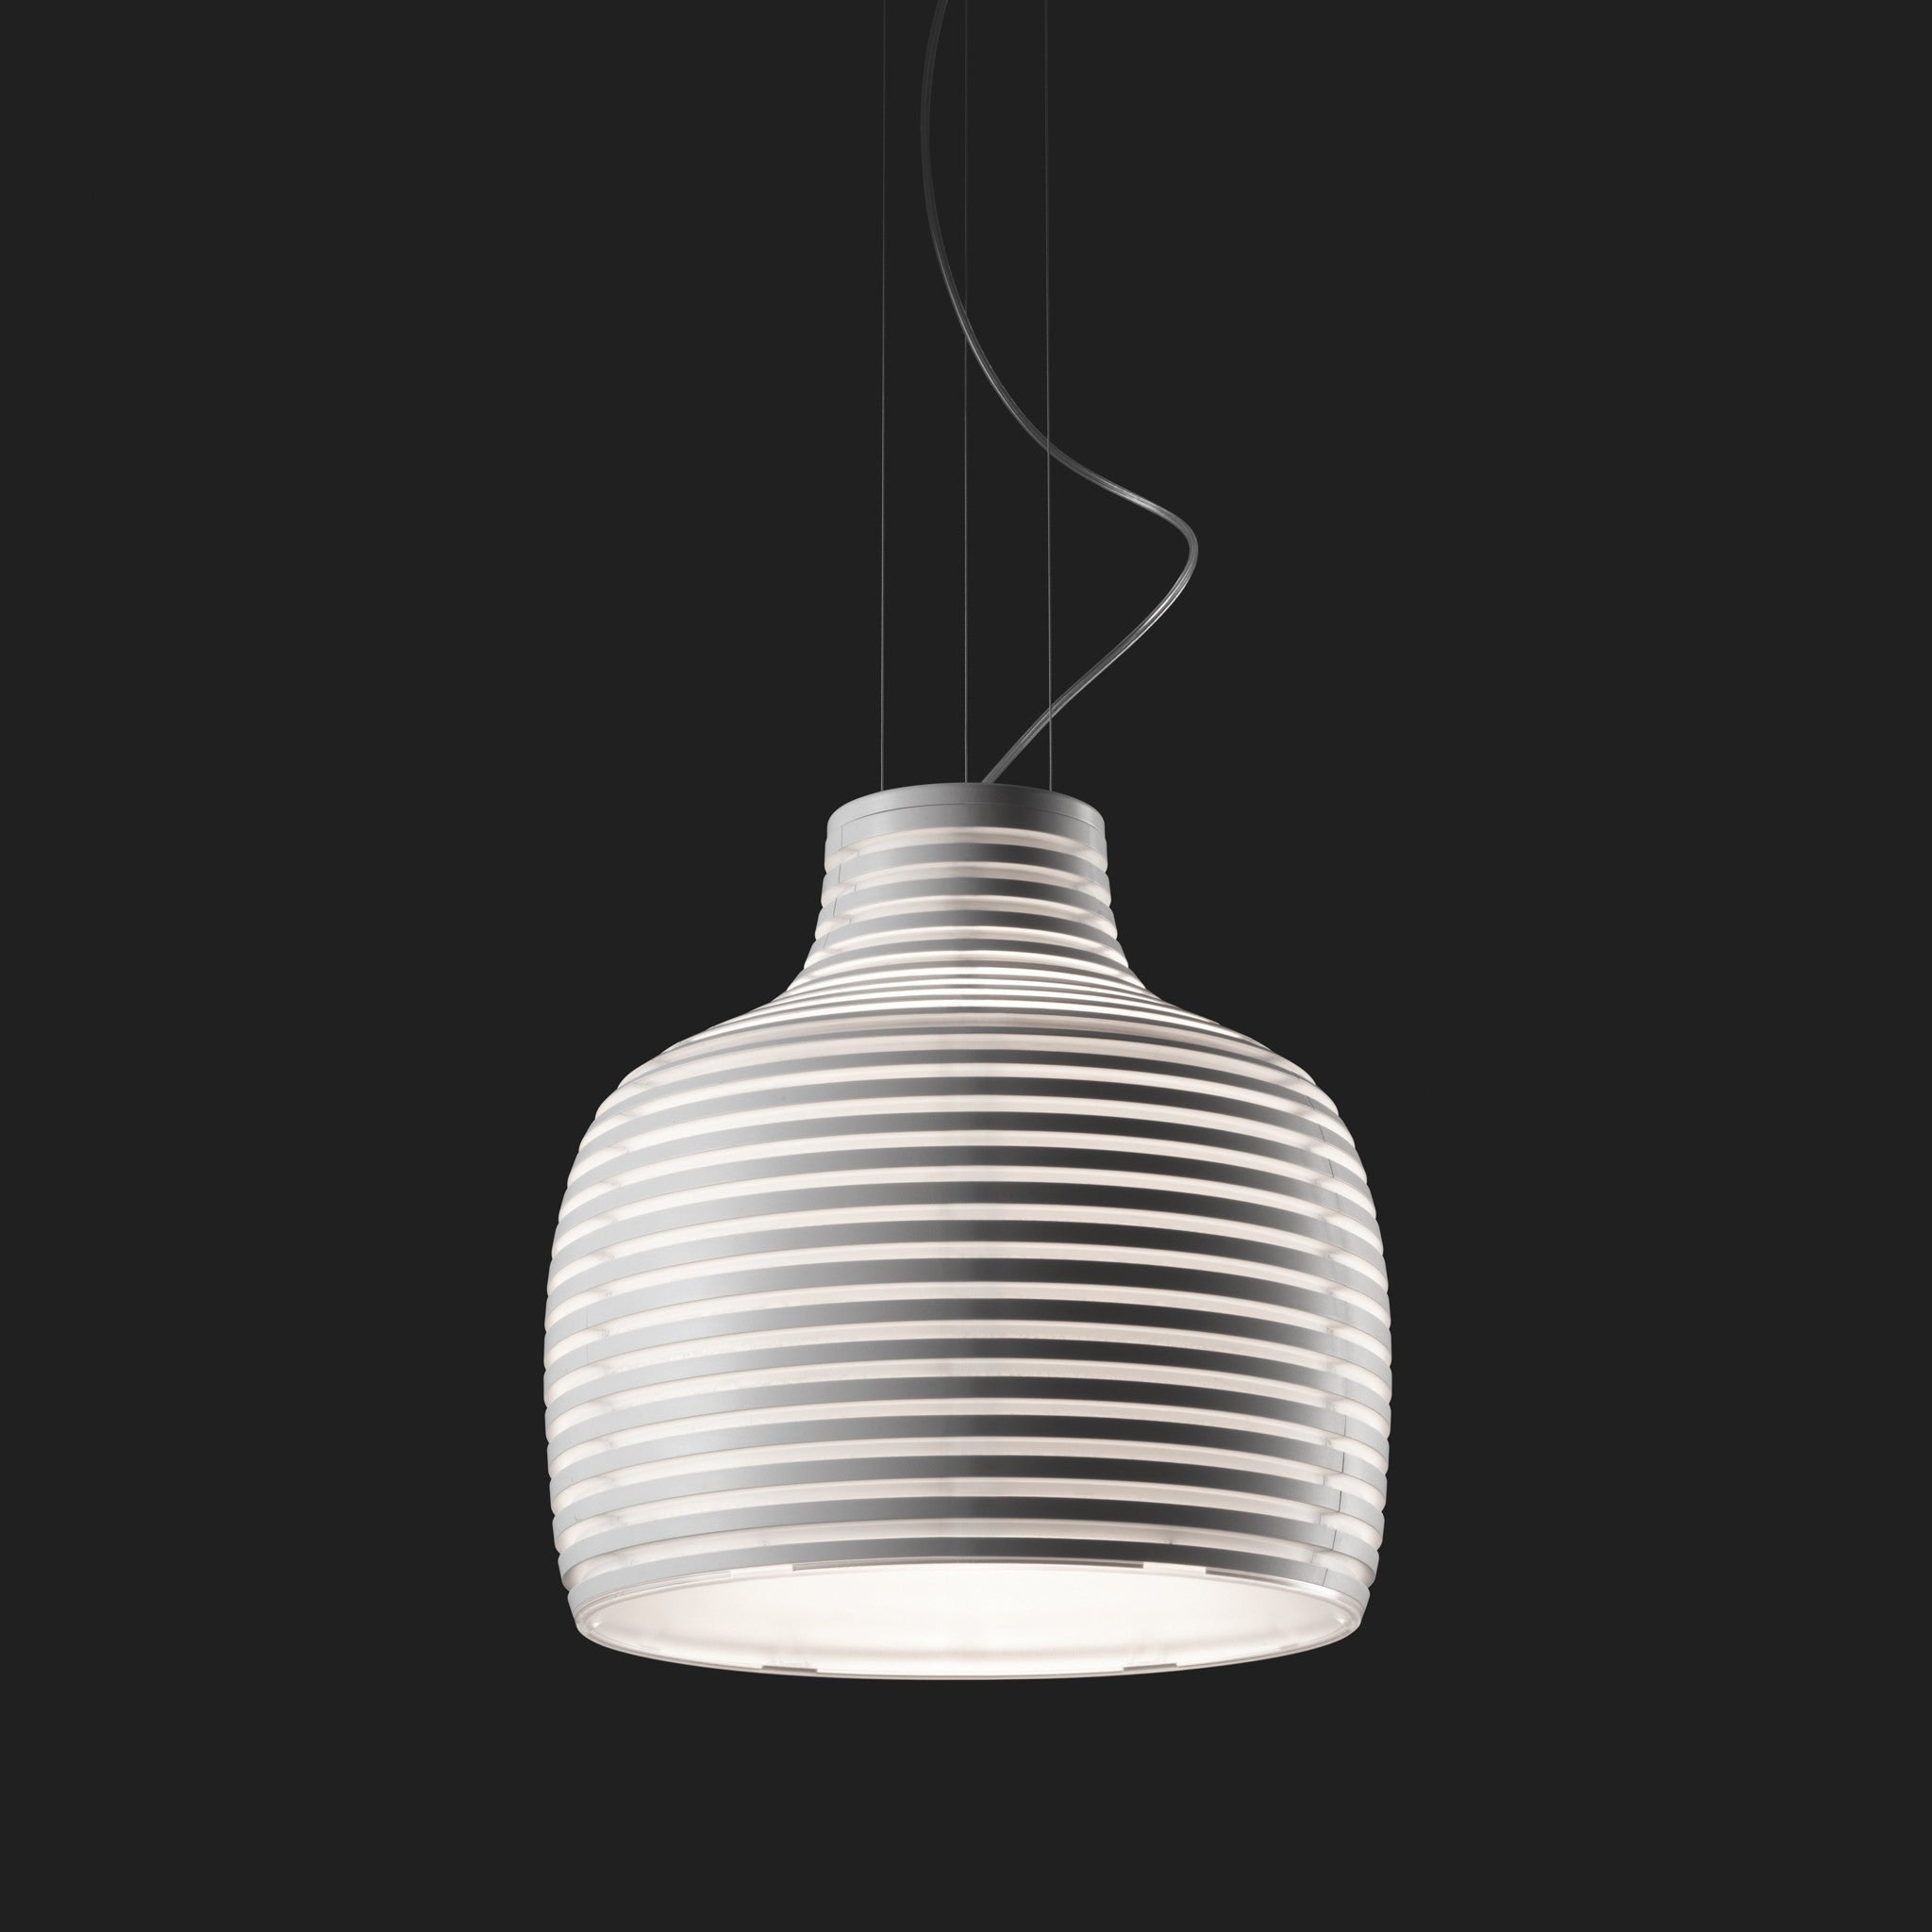 Behive Pendant Lamp by Foscarini